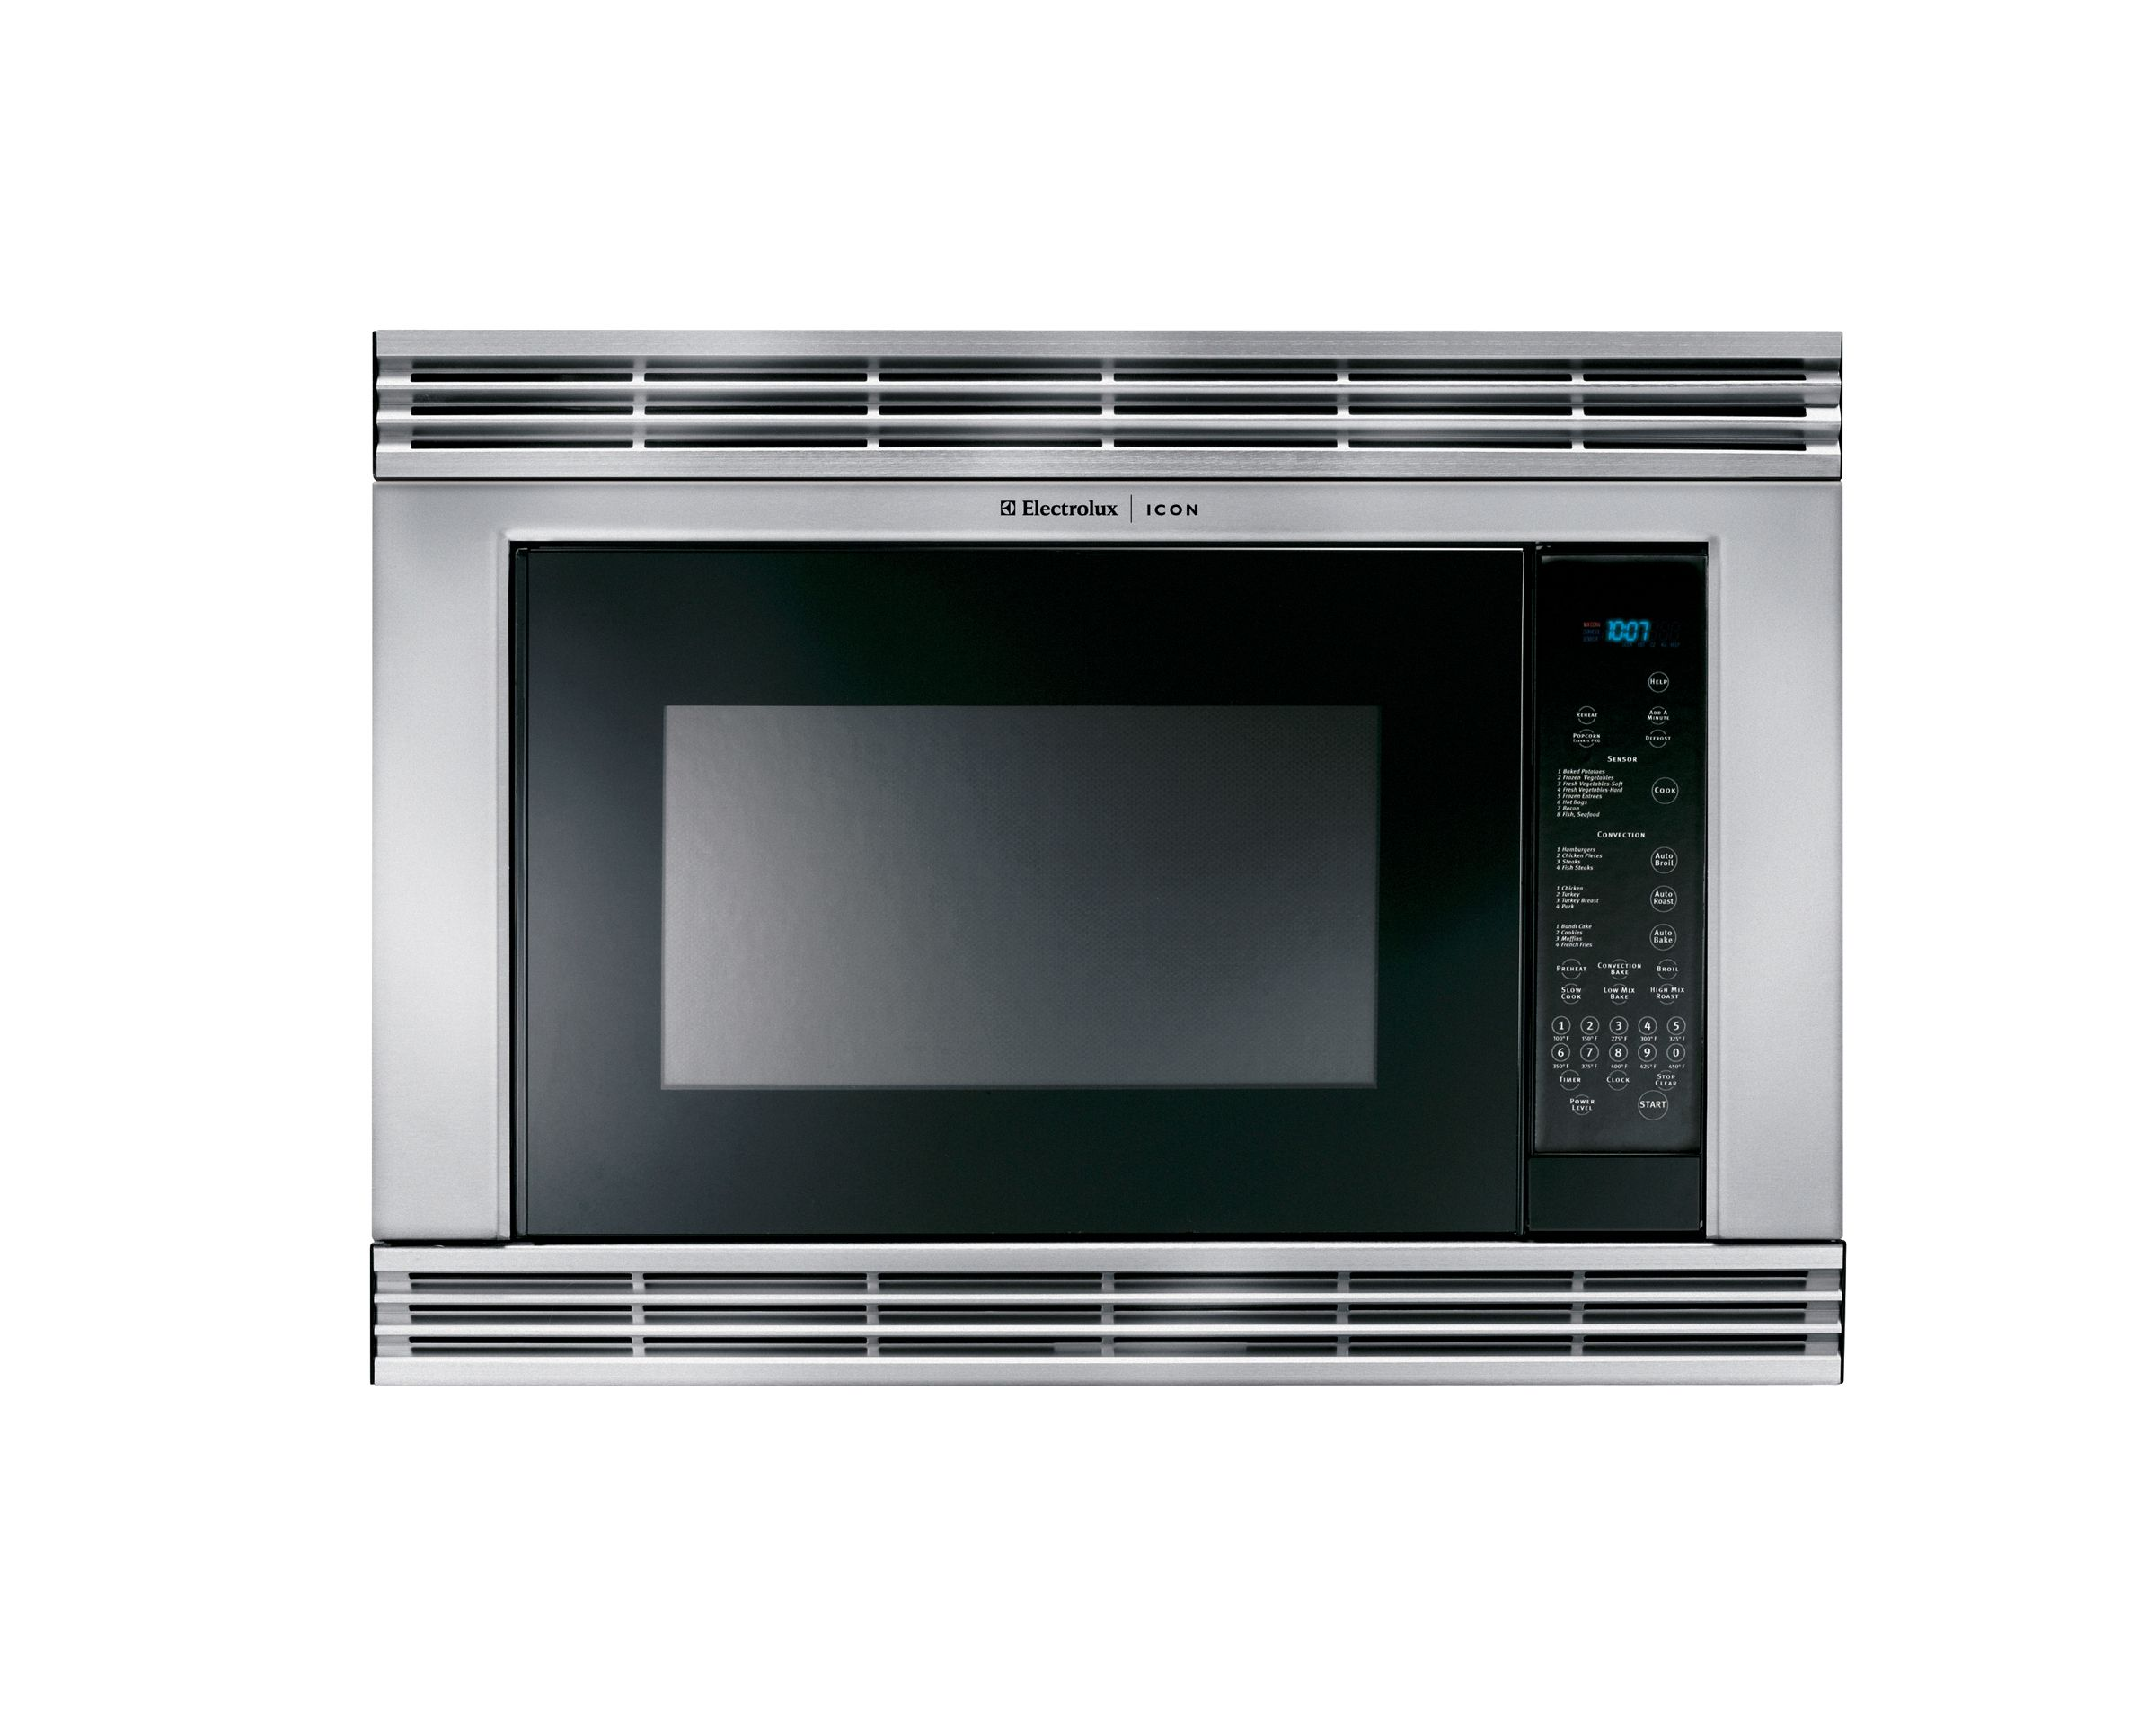 Electrolux ICON 1.5 cu. ft. Built-In Convection Microwave Oven - Stainless Steel